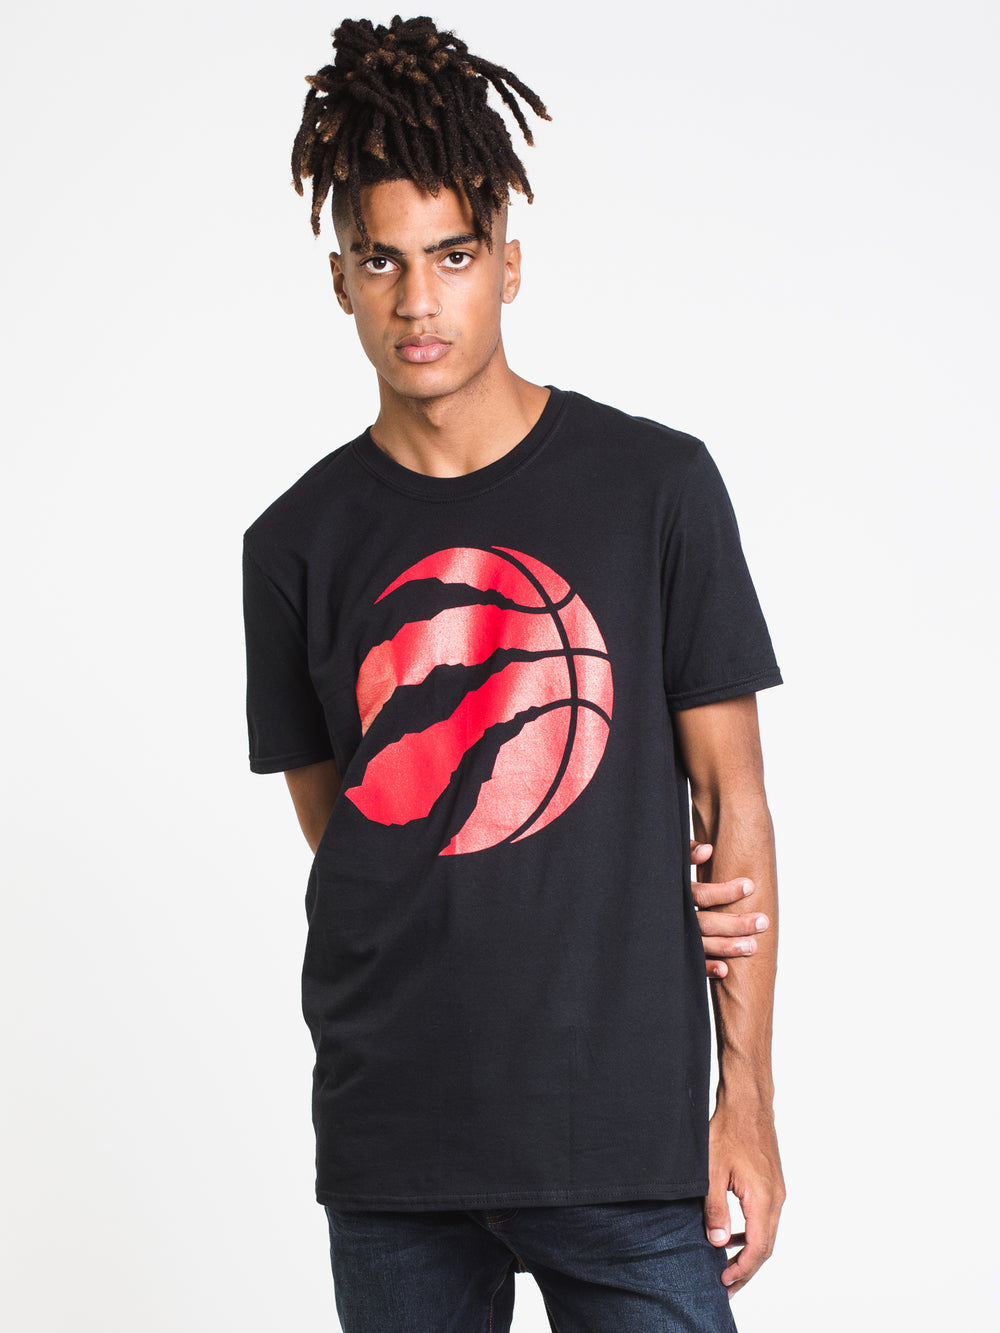 MENS FAN TEE - TORONTO RAPTORS